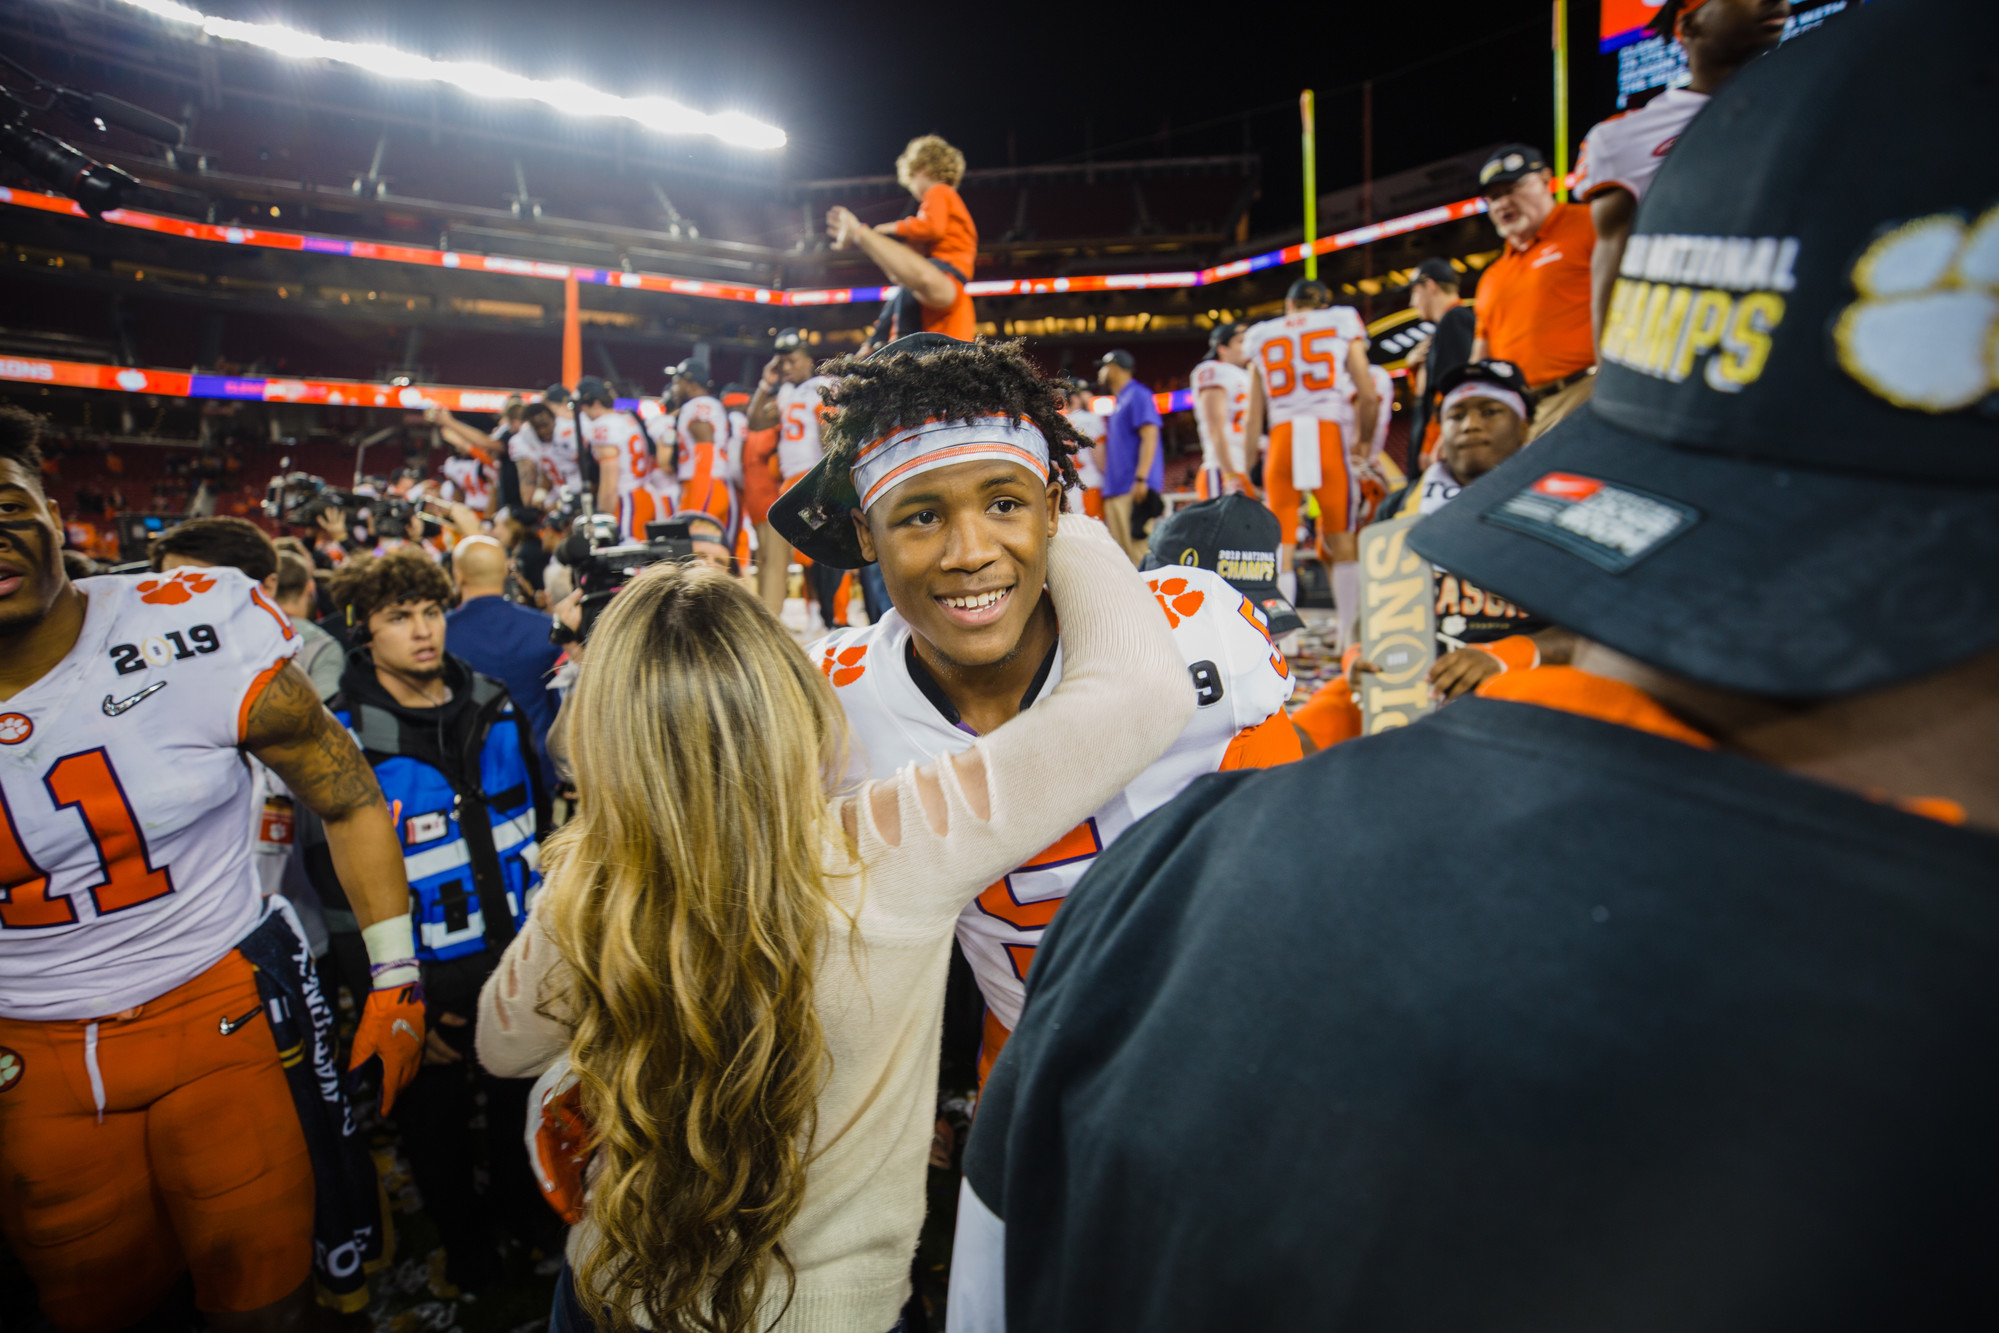 Clemson wide receiver Tee Higgins celebrates the Tigers win at Levi's Stadium in Santa Clara, California, on Monday, Jan. 7 after routing Alabama 44-16 to win the 2019 CFP National Championship.